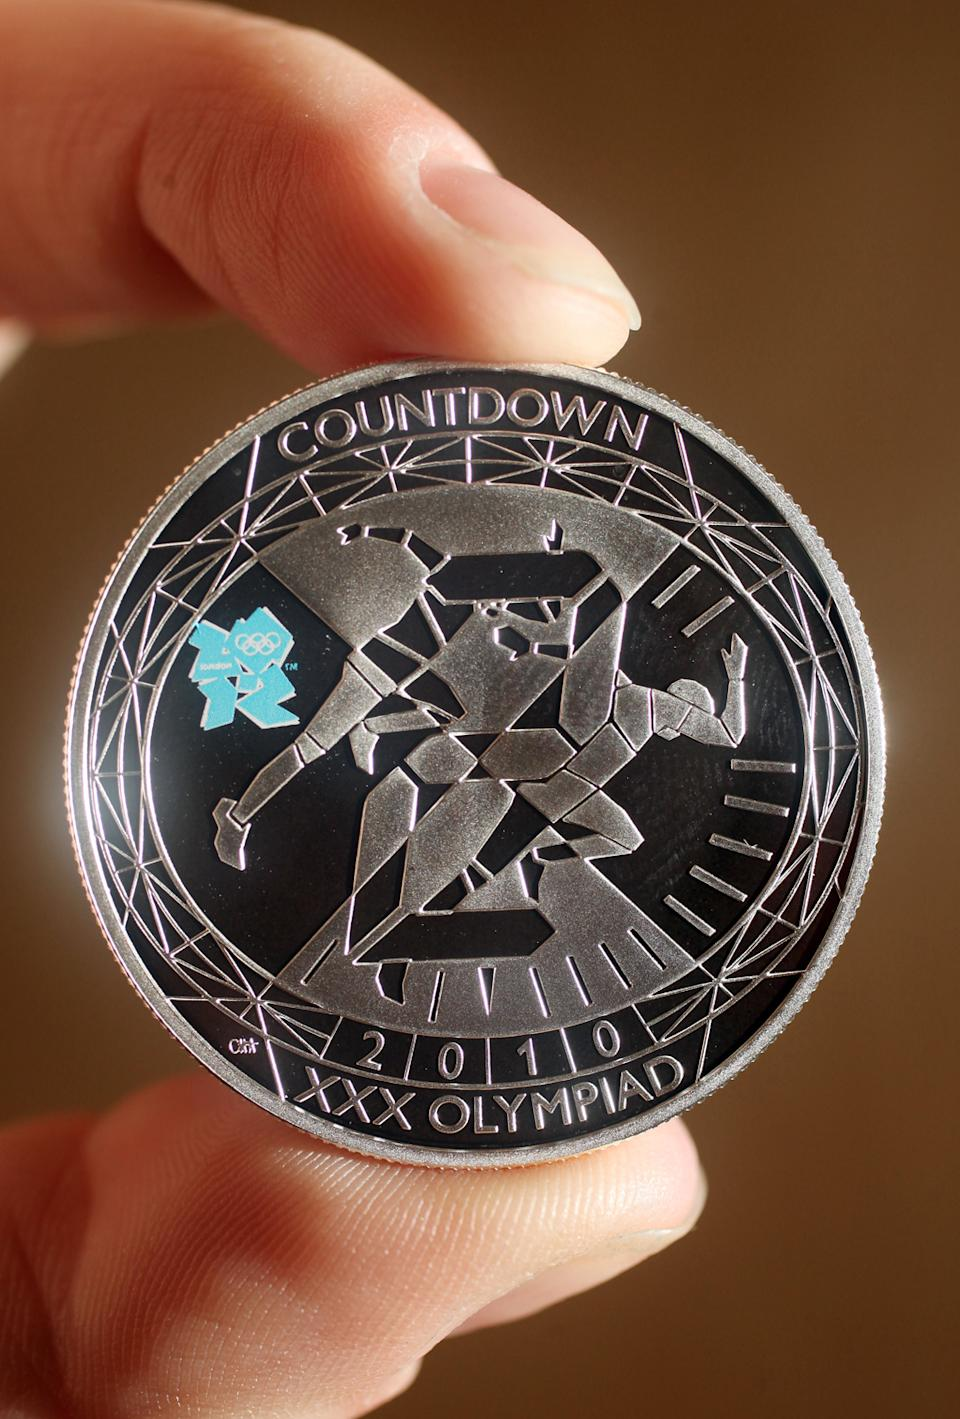 A woman holds a London 2012 countdown commemorative coin at the launch of the London Olympic Games official merchandise on July 30, 2010 in London, England. (Photo by Oli Scarff/Getty Images)